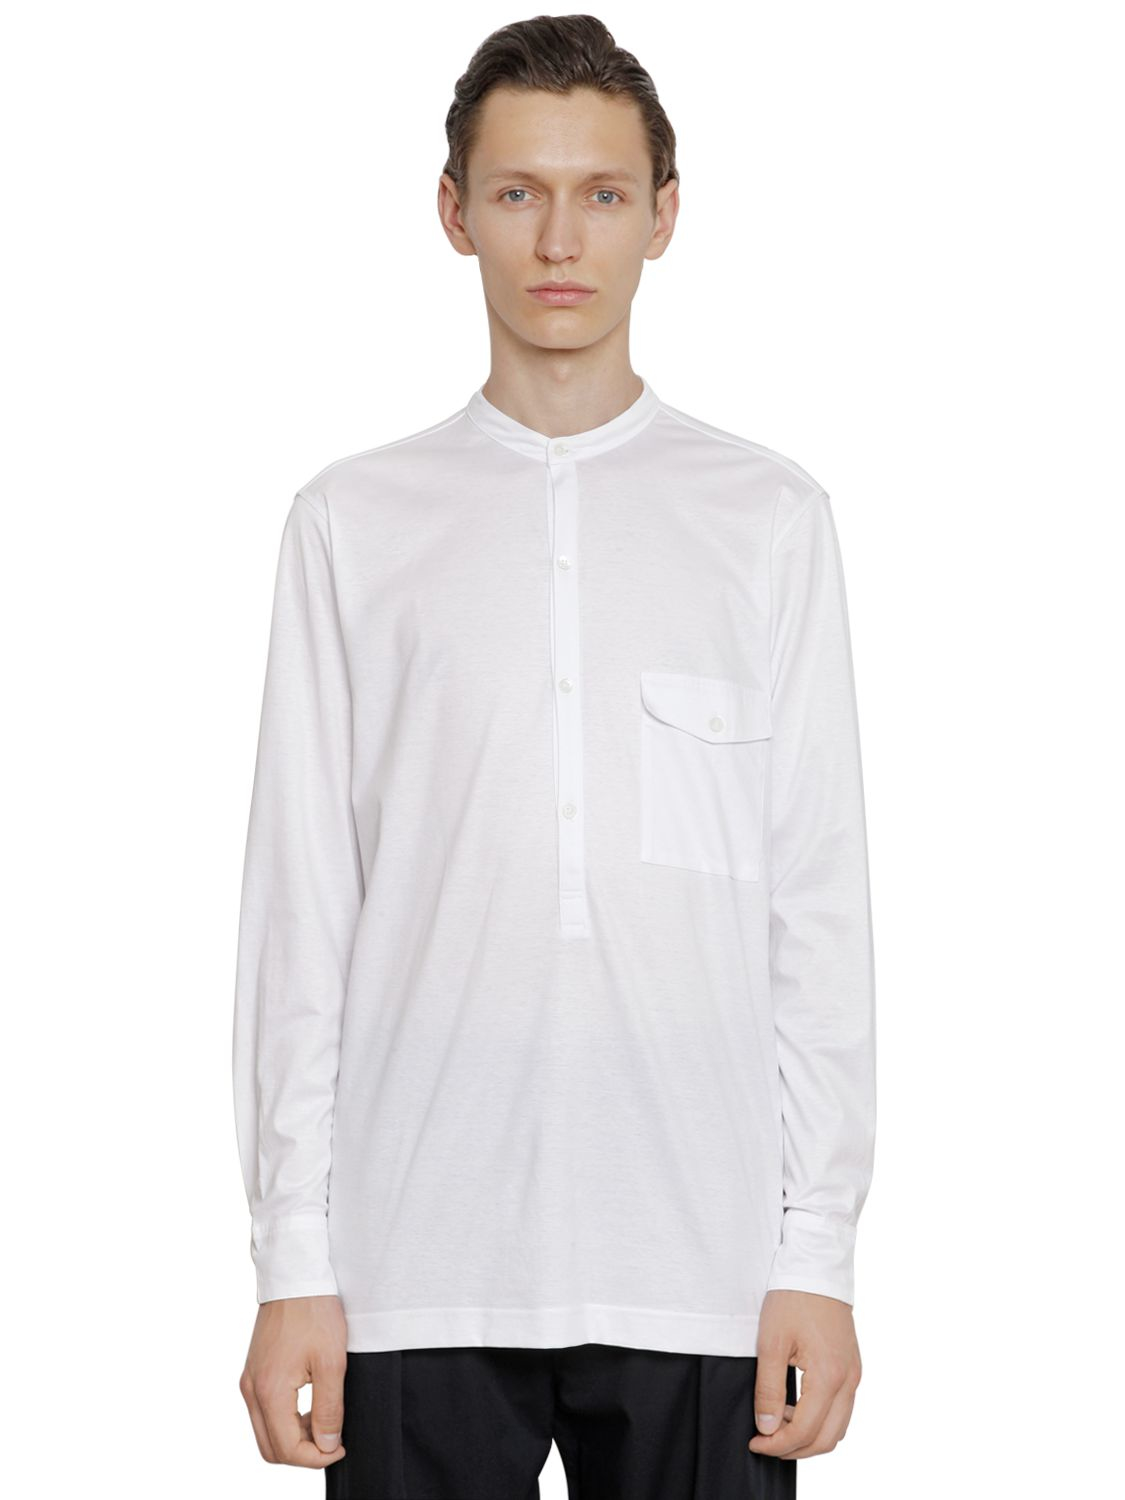 Christophe lemaire cotton jersey long sleeve henley t for Henley t shirt long sleeve